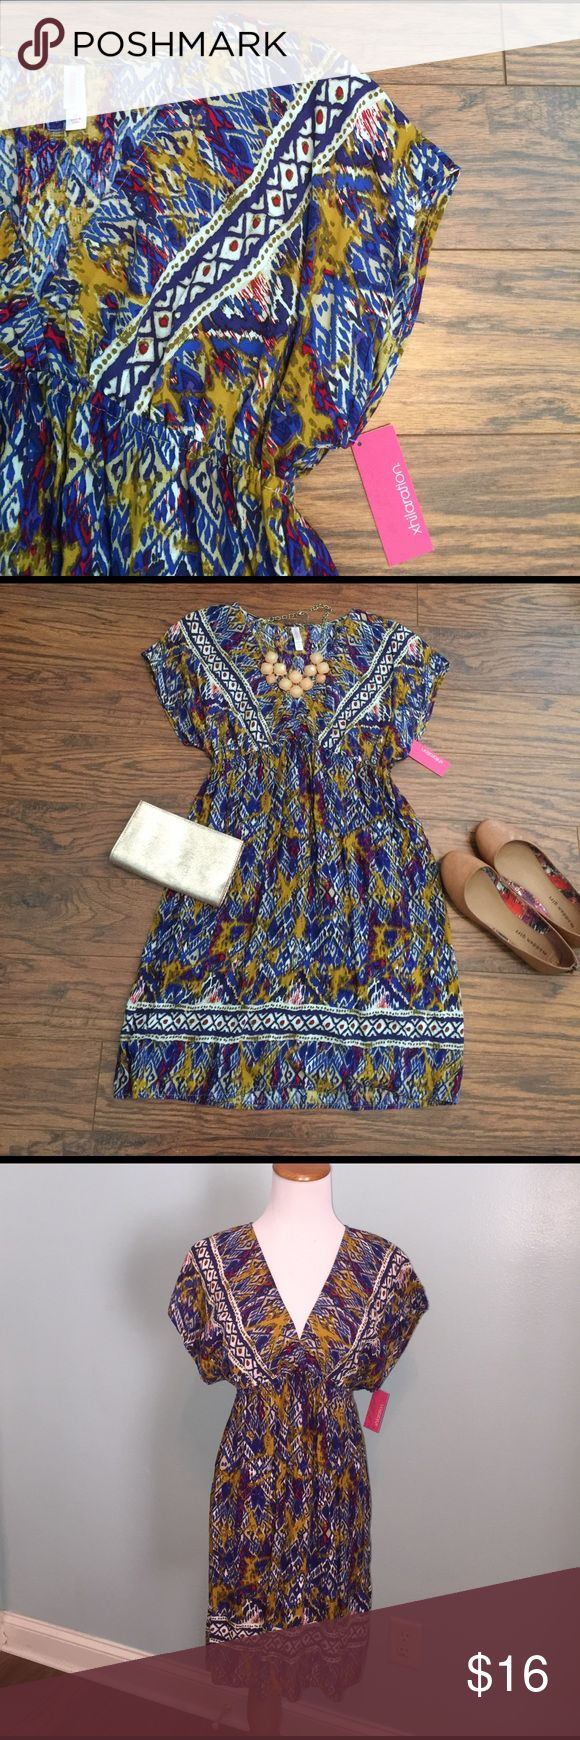 NWT!! Super cute tribal print dress Size medium. Super cute print, lightweight fabric. Perfect for a Spring day or a beach trip! Would also be perfect for a coverup! 100% rayon. Xhilaration Dresses Midi